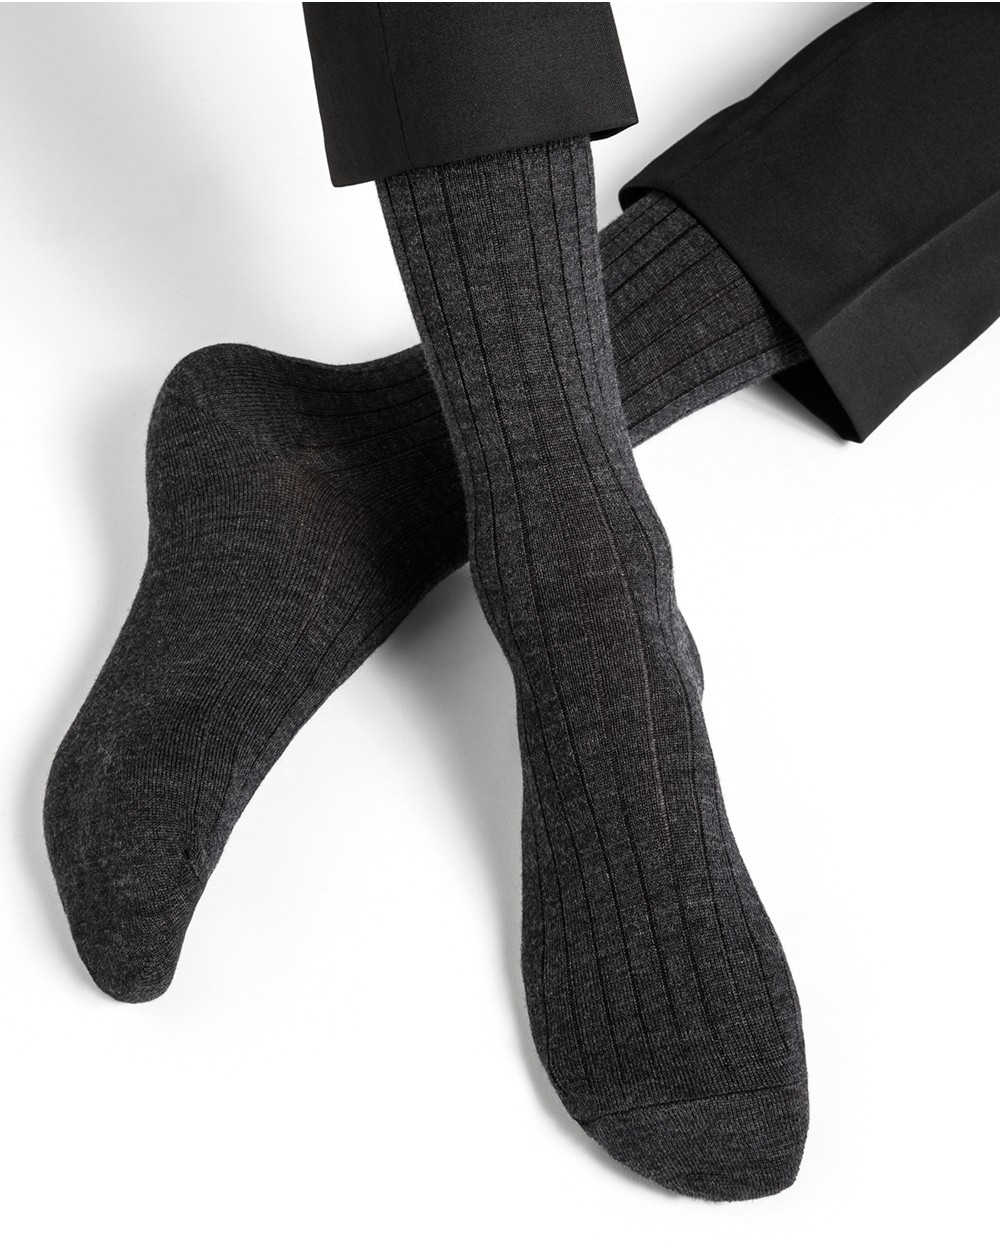 Wool socks with cotton inside